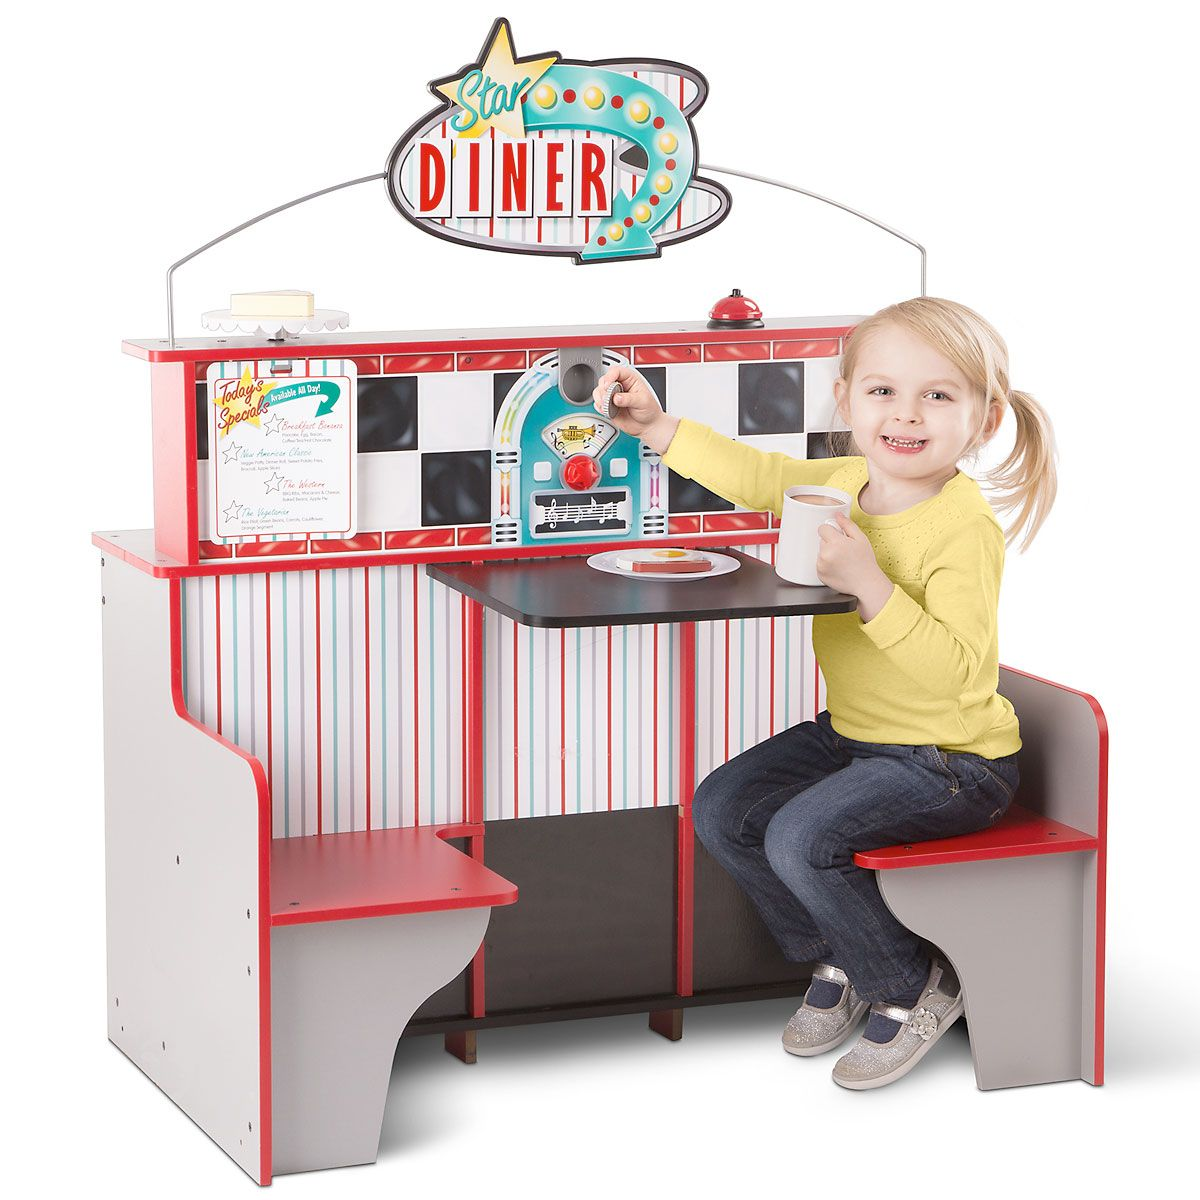 Melissa & Doug's Star Diner Restaurant Double-sided play space provides double the fun. On the kitchen side, kids can make believe they're cooking and serving at their own restaurant, while on the booth side, young customers can order and enjoy a pretend meal. Kitchen features oven, stovetop and grill, 2-shelf refrigerator, drink dispenser, and milkshake mixer. Booth side includes 2 seats and a jukebox with a spinning dial that lets them choose their favorite tunes. A coin is included for small music lovers to drop in the jukebox slot. Also includes Star Diner sign with clips on one side to hold orders. Large enough for several kids to play at once, the assembled set measures 23  x 43-1/2  and 35  high. Play space is made of wood for sturdy service over years of play. Adult assembly needed. Ages 3+. Standard shipping only. Expedited shipping not available. Cannot be sent outside the 48 contiguous states, or to P.O. Box, APO/FPO, or foreign addresses.